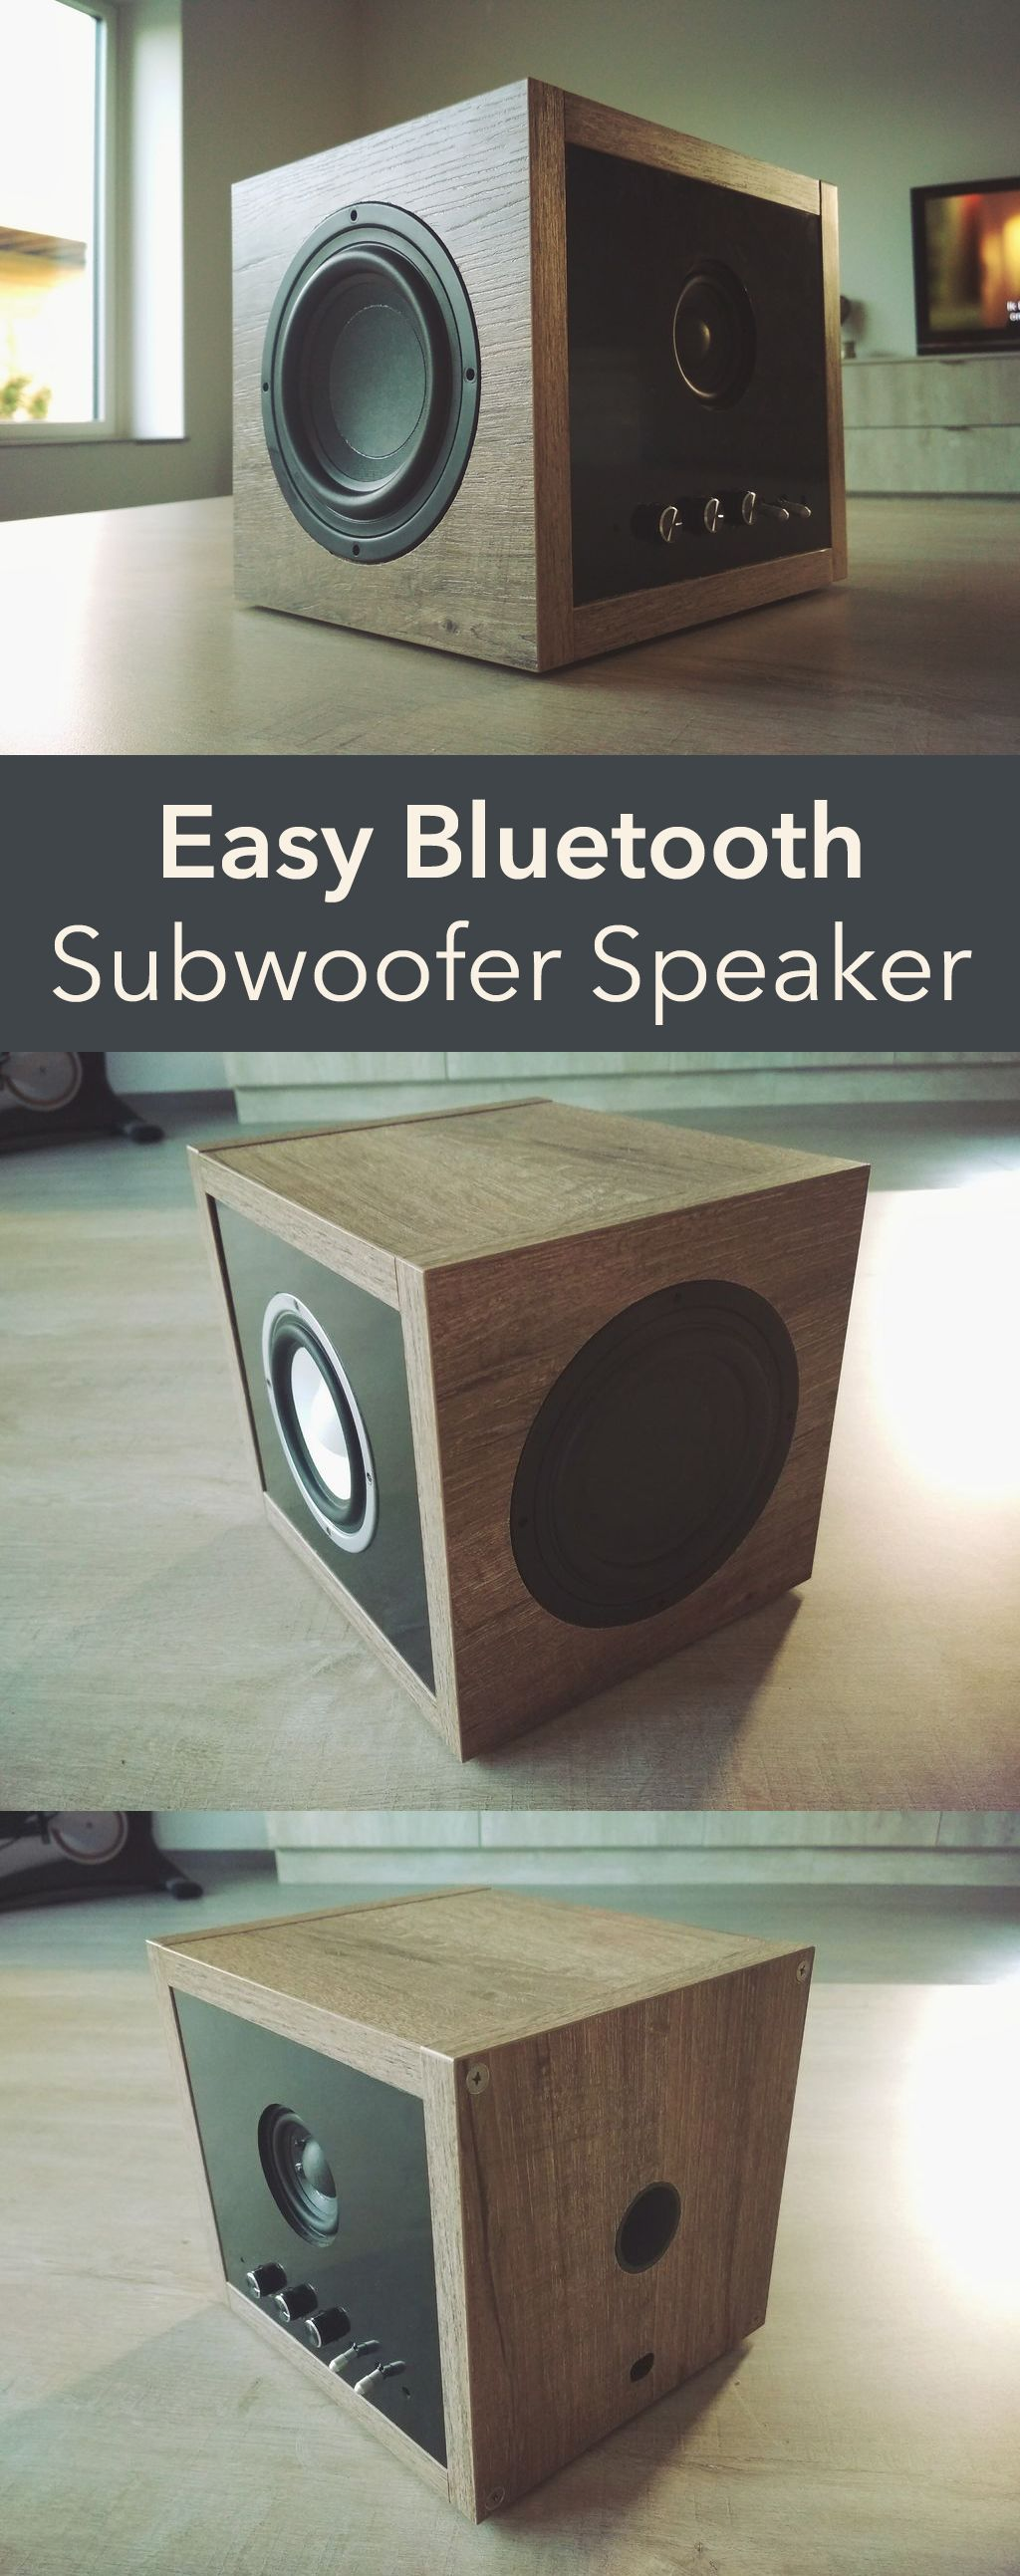 easy bluetooth subwoofer speaker 80w sammlung pinterest lautsprecher technik und boxen. Black Bedroom Furniture Sets. Home Design Ideas